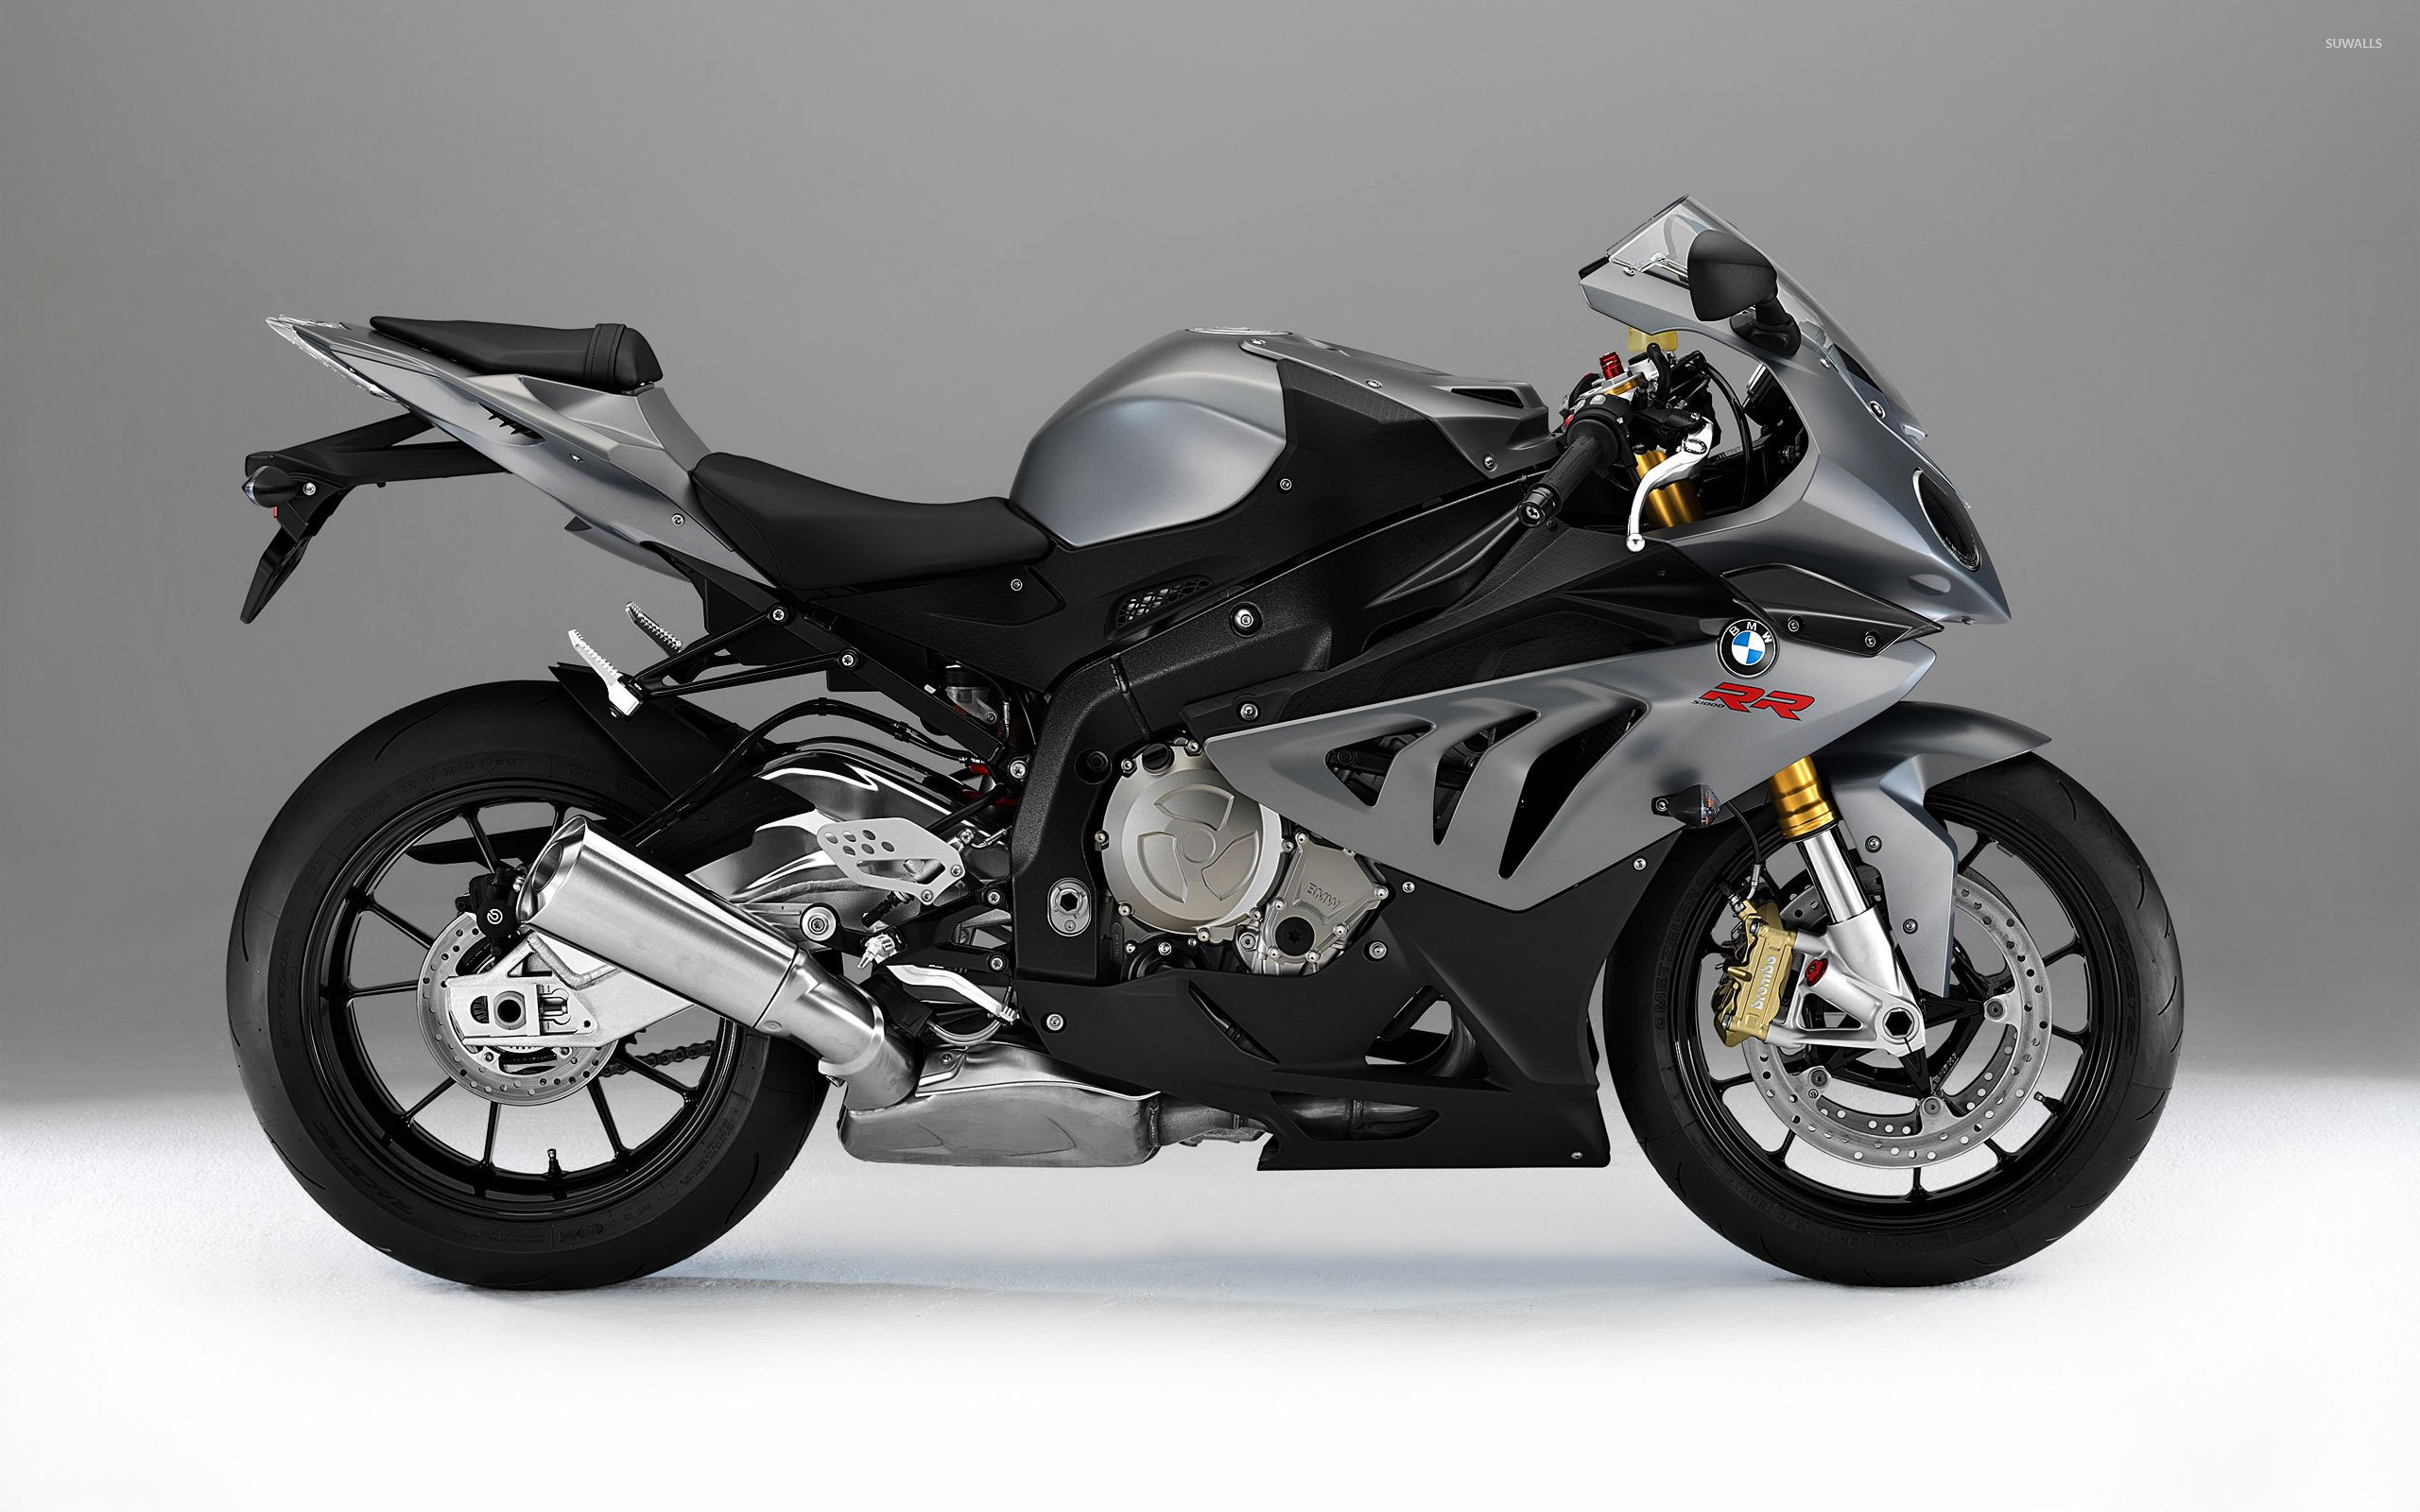 Bmw S1000rr Wallpaper - WallpaperSafari